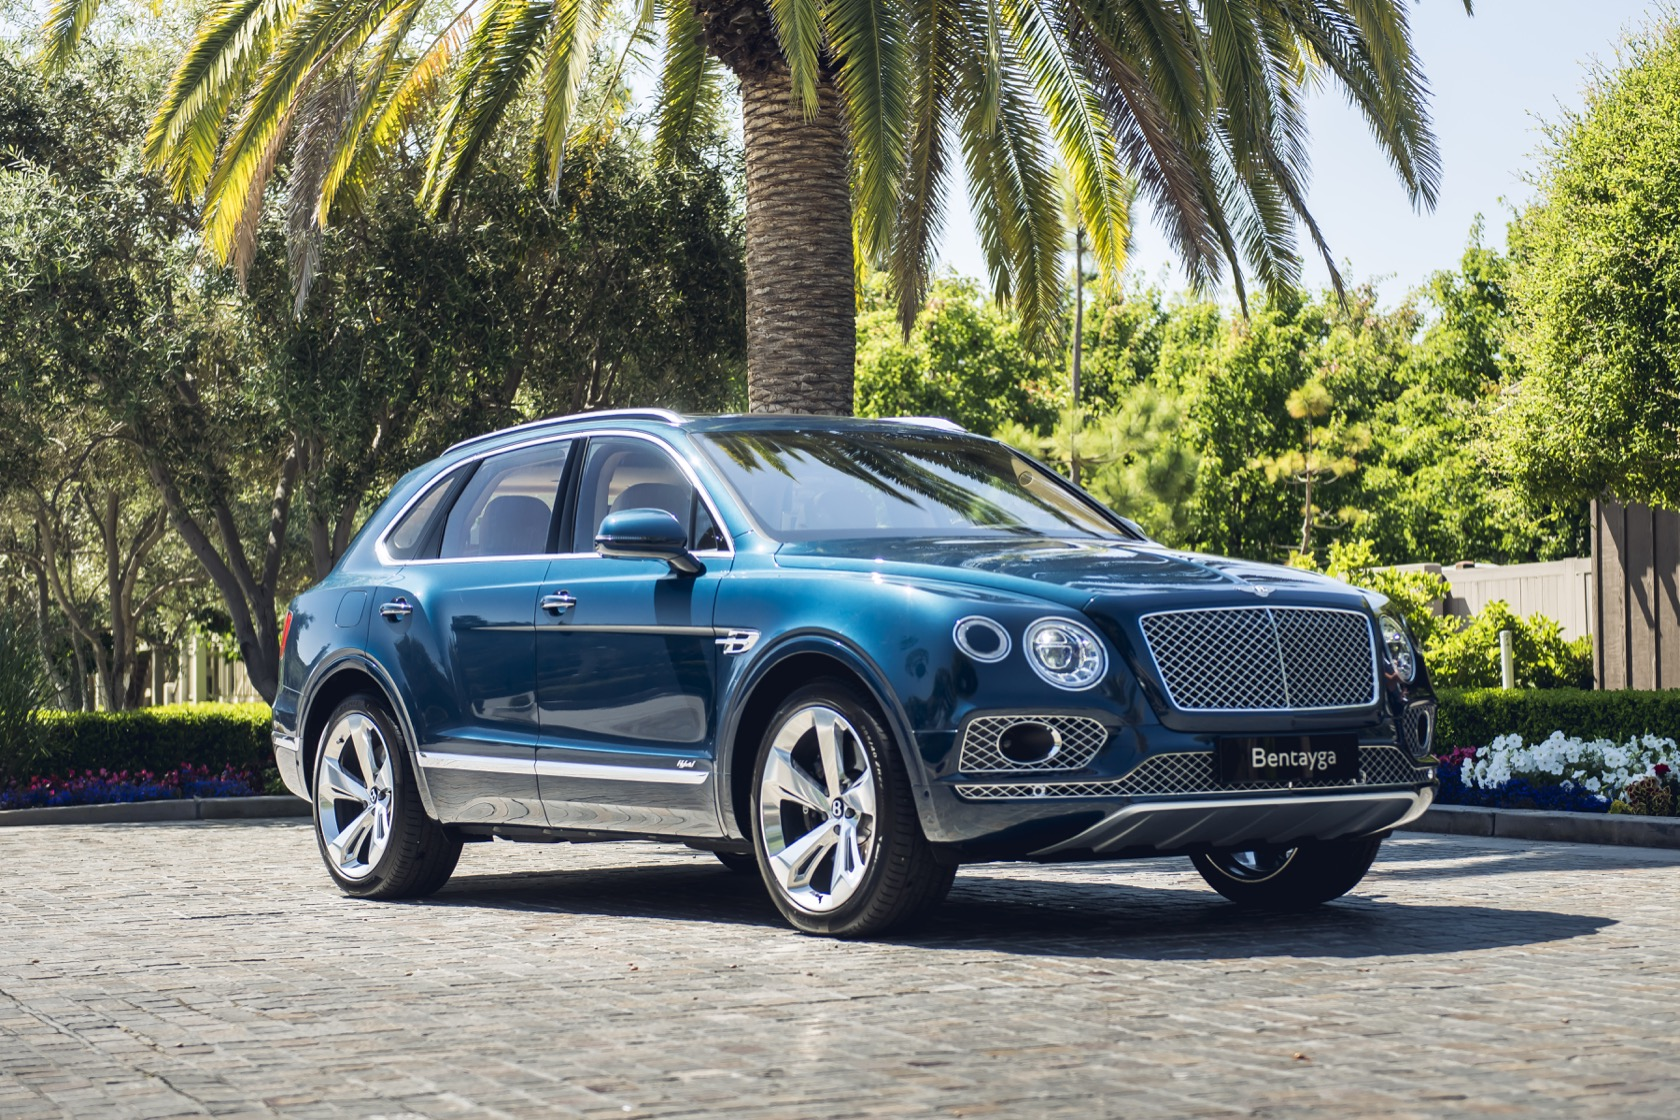 2020 Bentley Bentayga Hybrid First Drive: Charged With